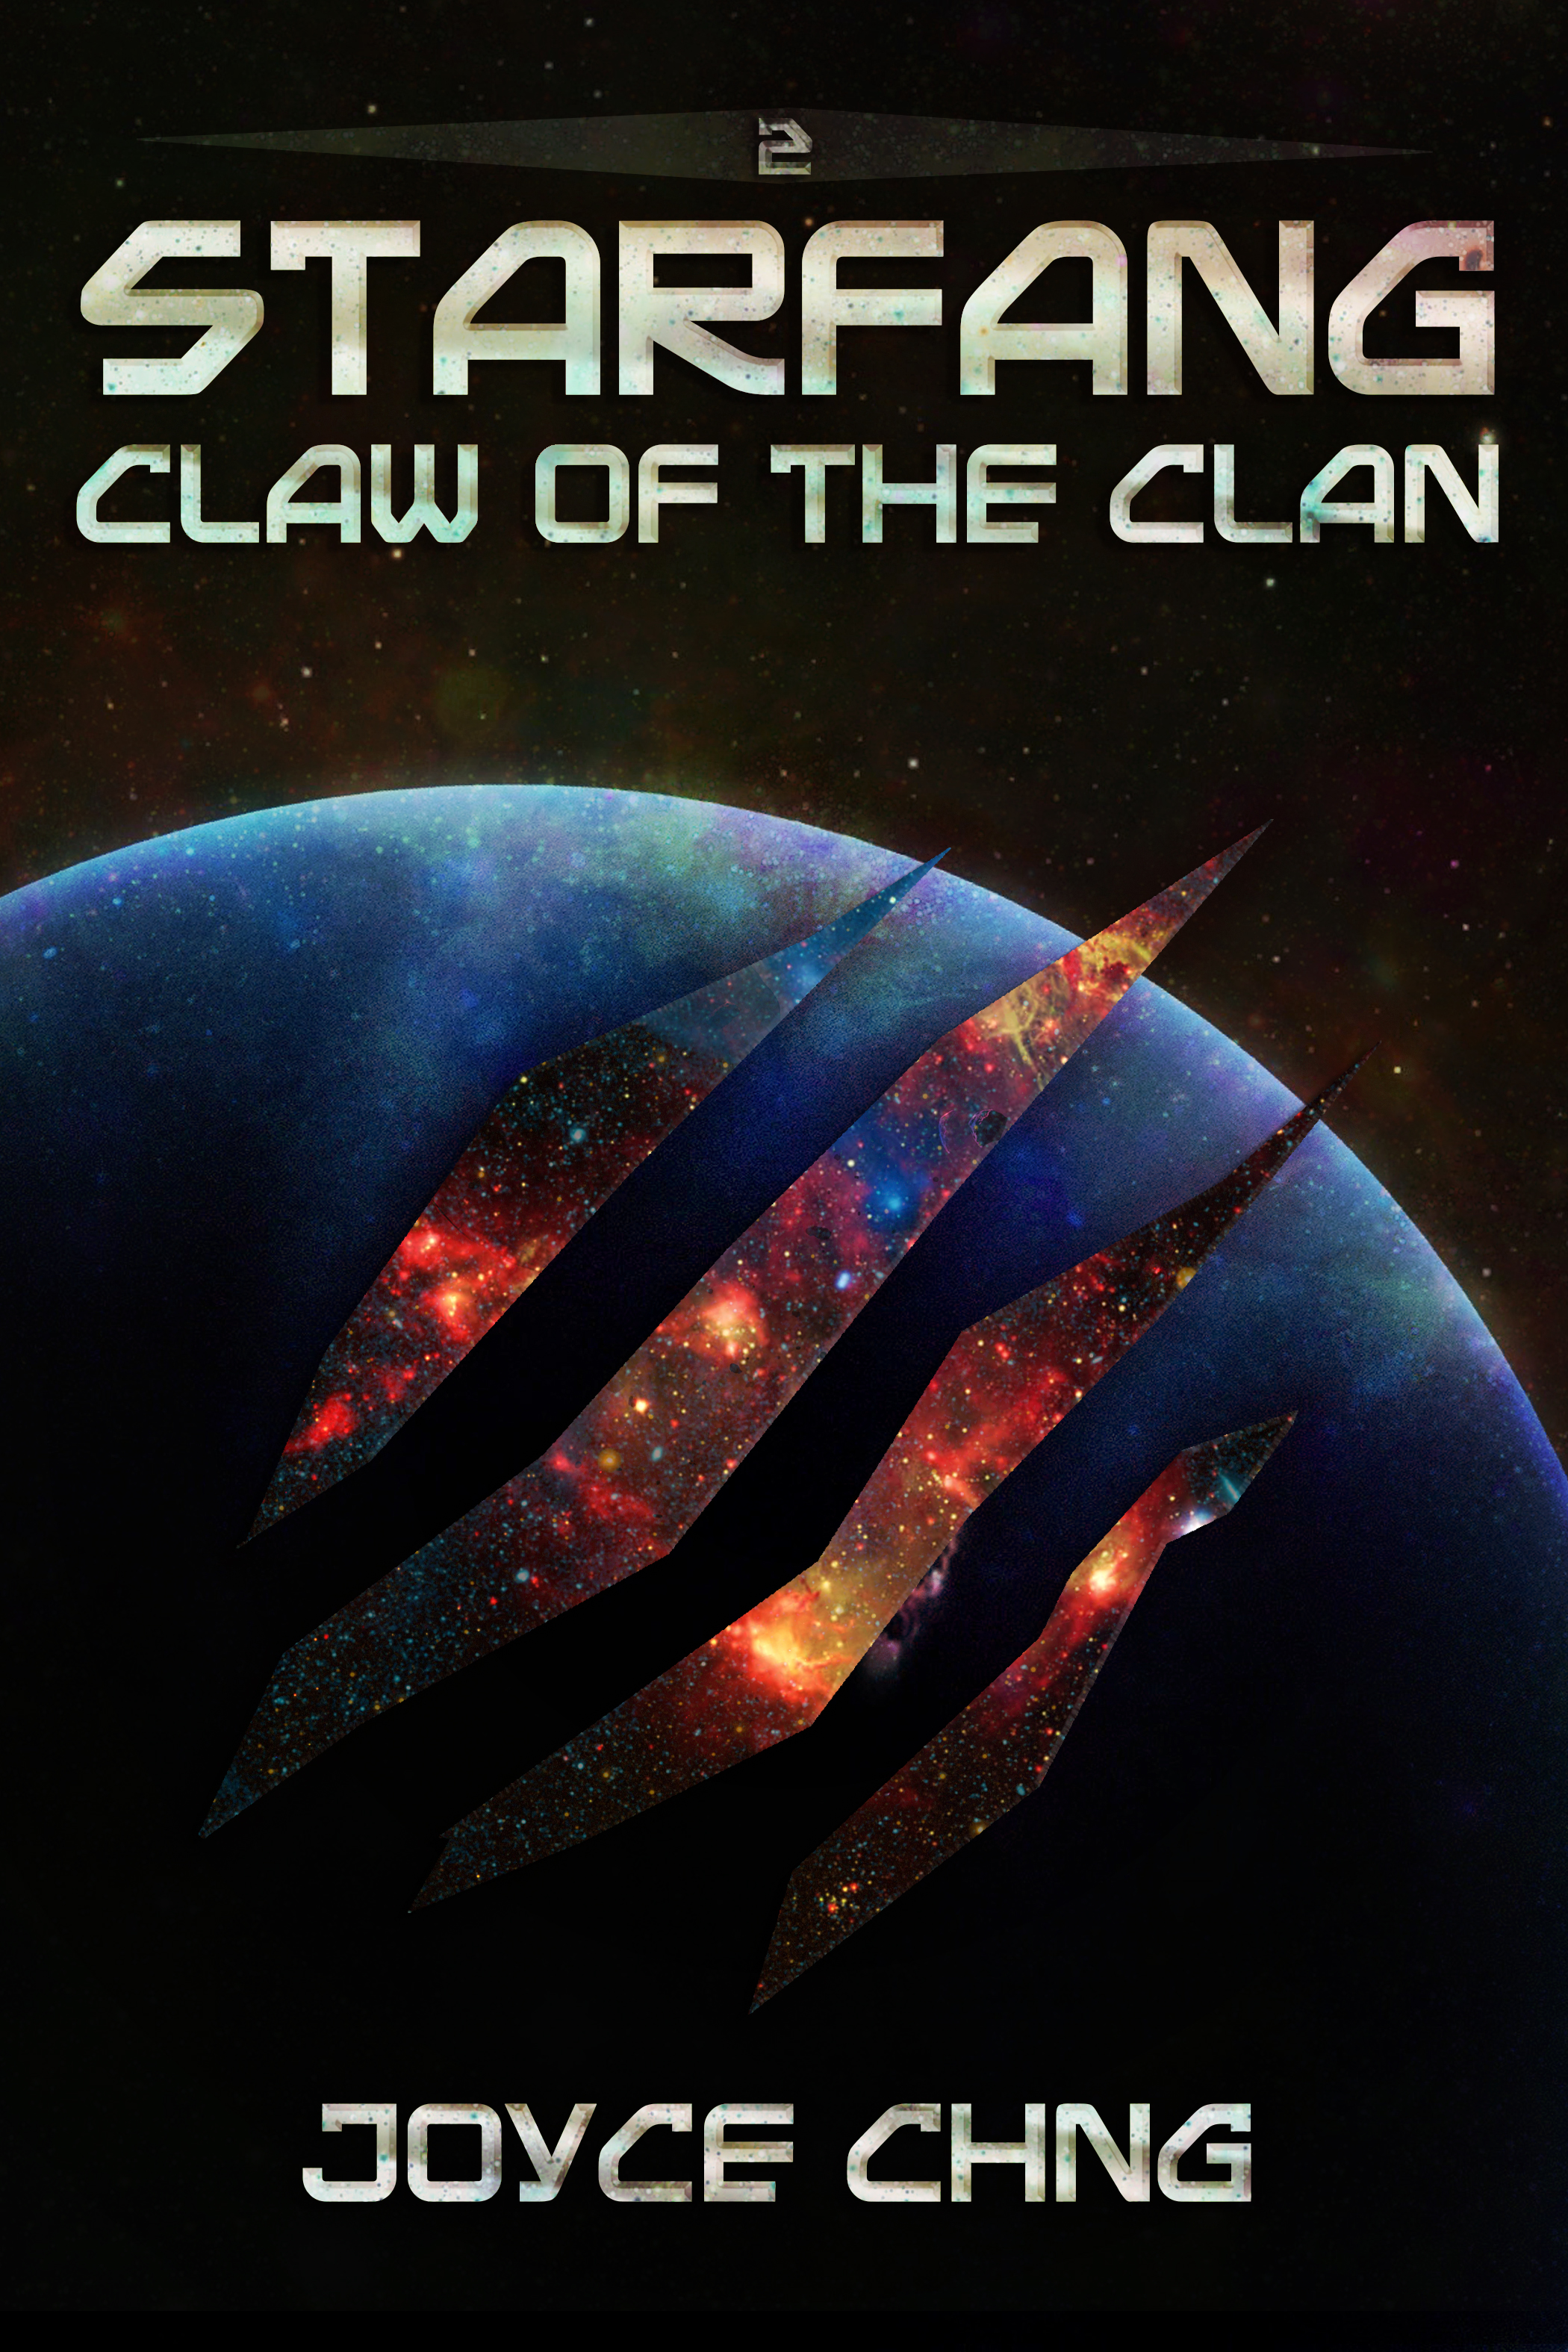 Starfang Claw of the Clan by Joyce Chng